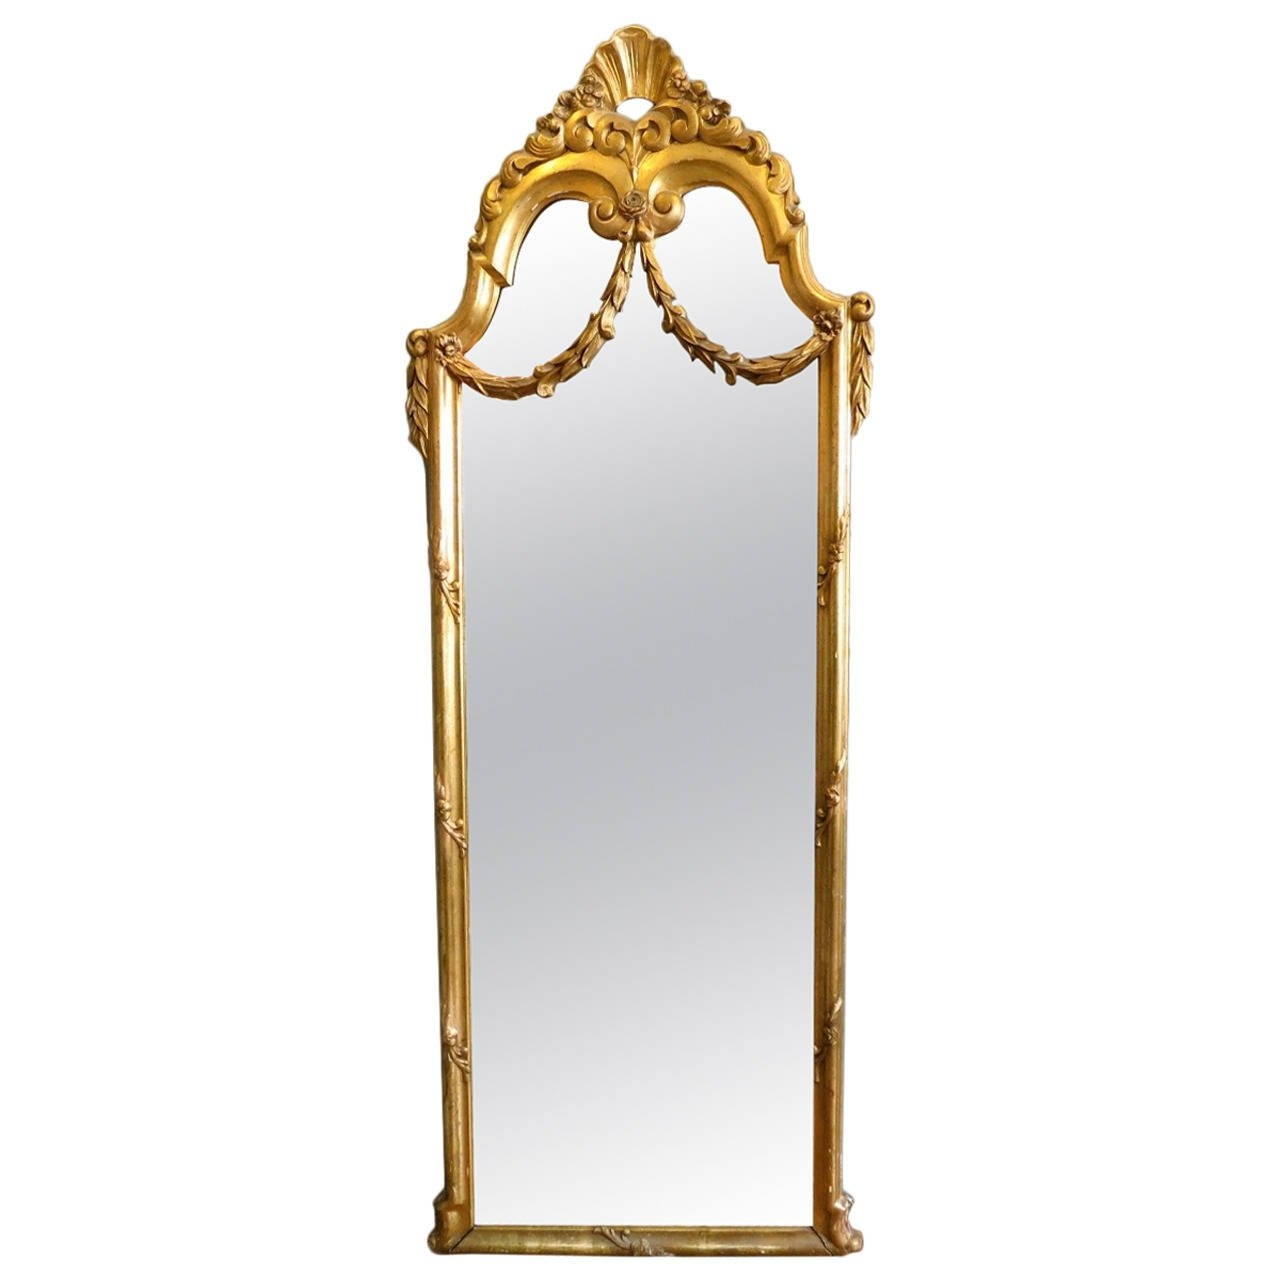 Antique French Gold Gilt Floor Standing Mirror At 1stdibs Intended For French Floor Standing Mirror (Image 7 of 15)